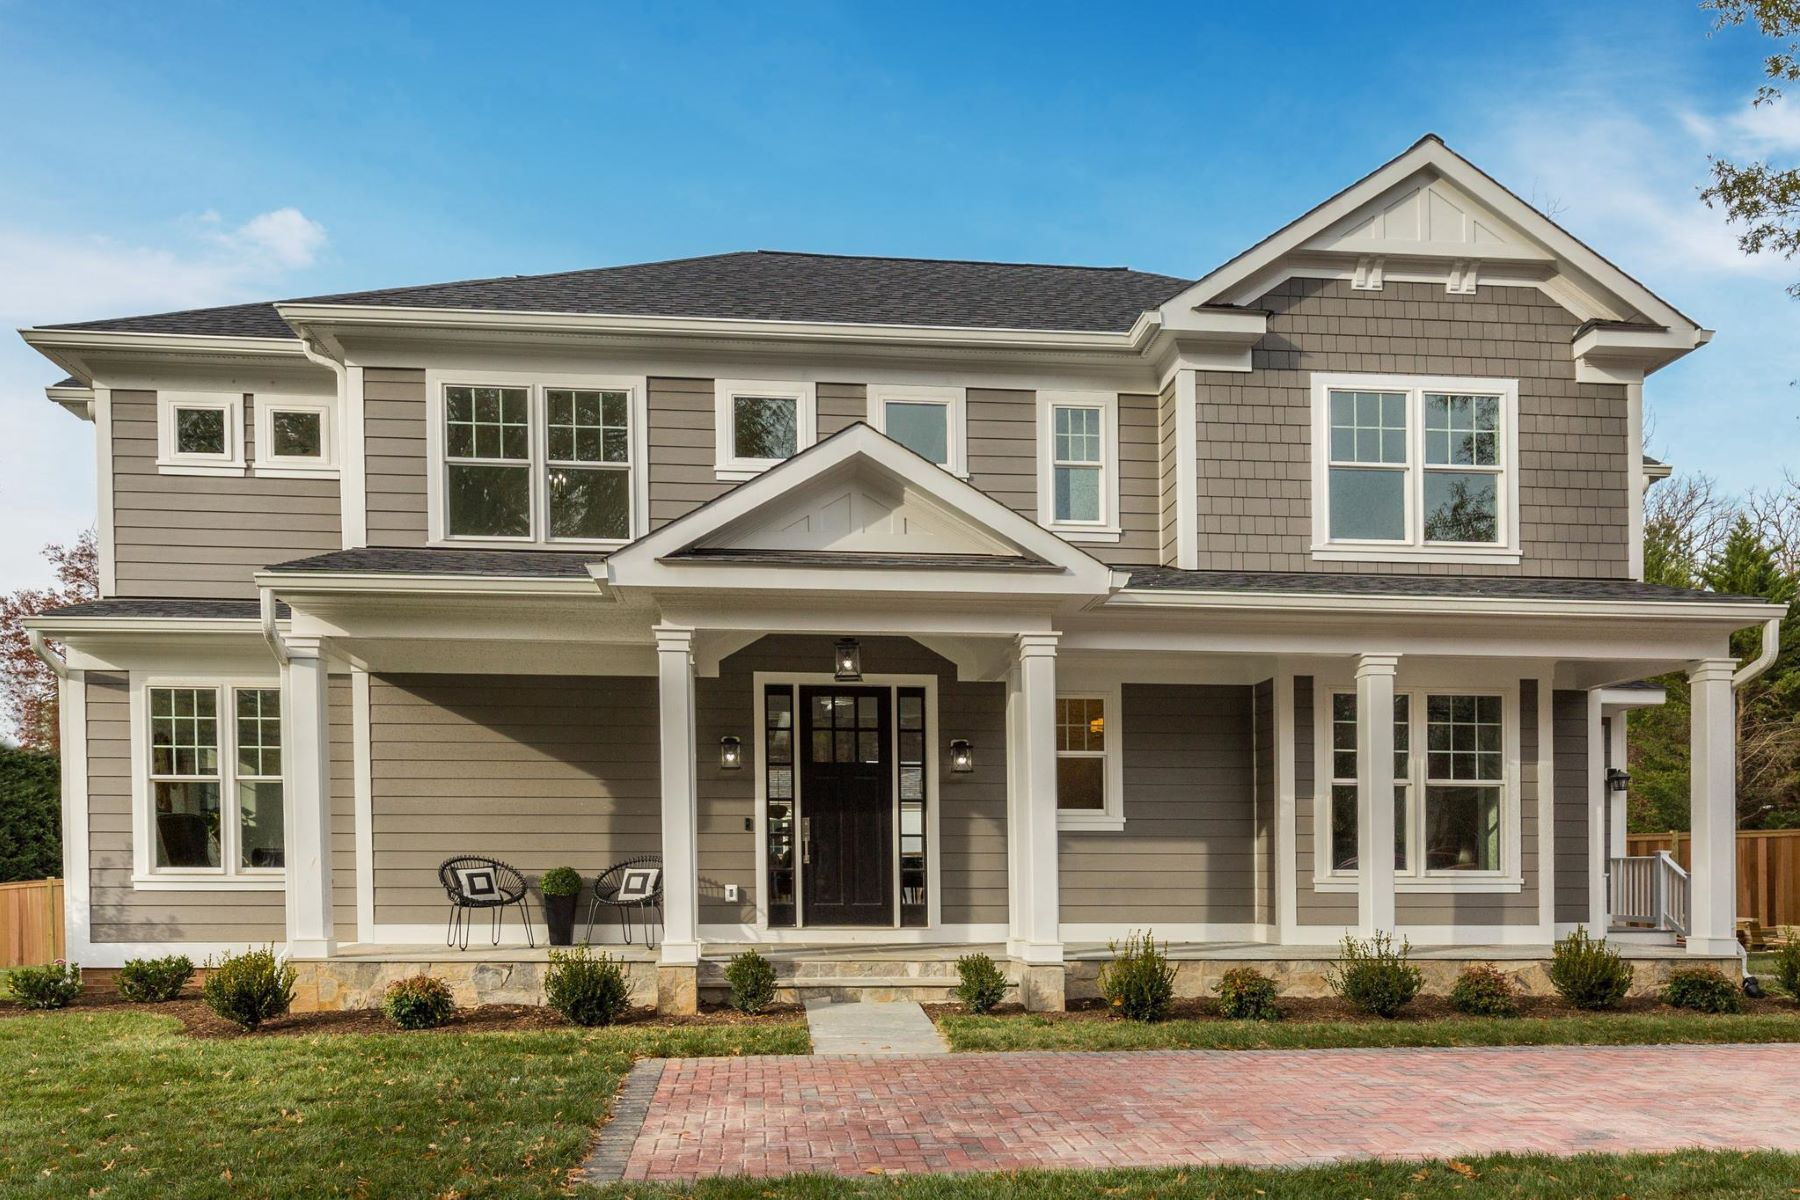 Single Family Homes for Active at 3521 Cummings Ln Chevy Chase, Maryland 20815 United States